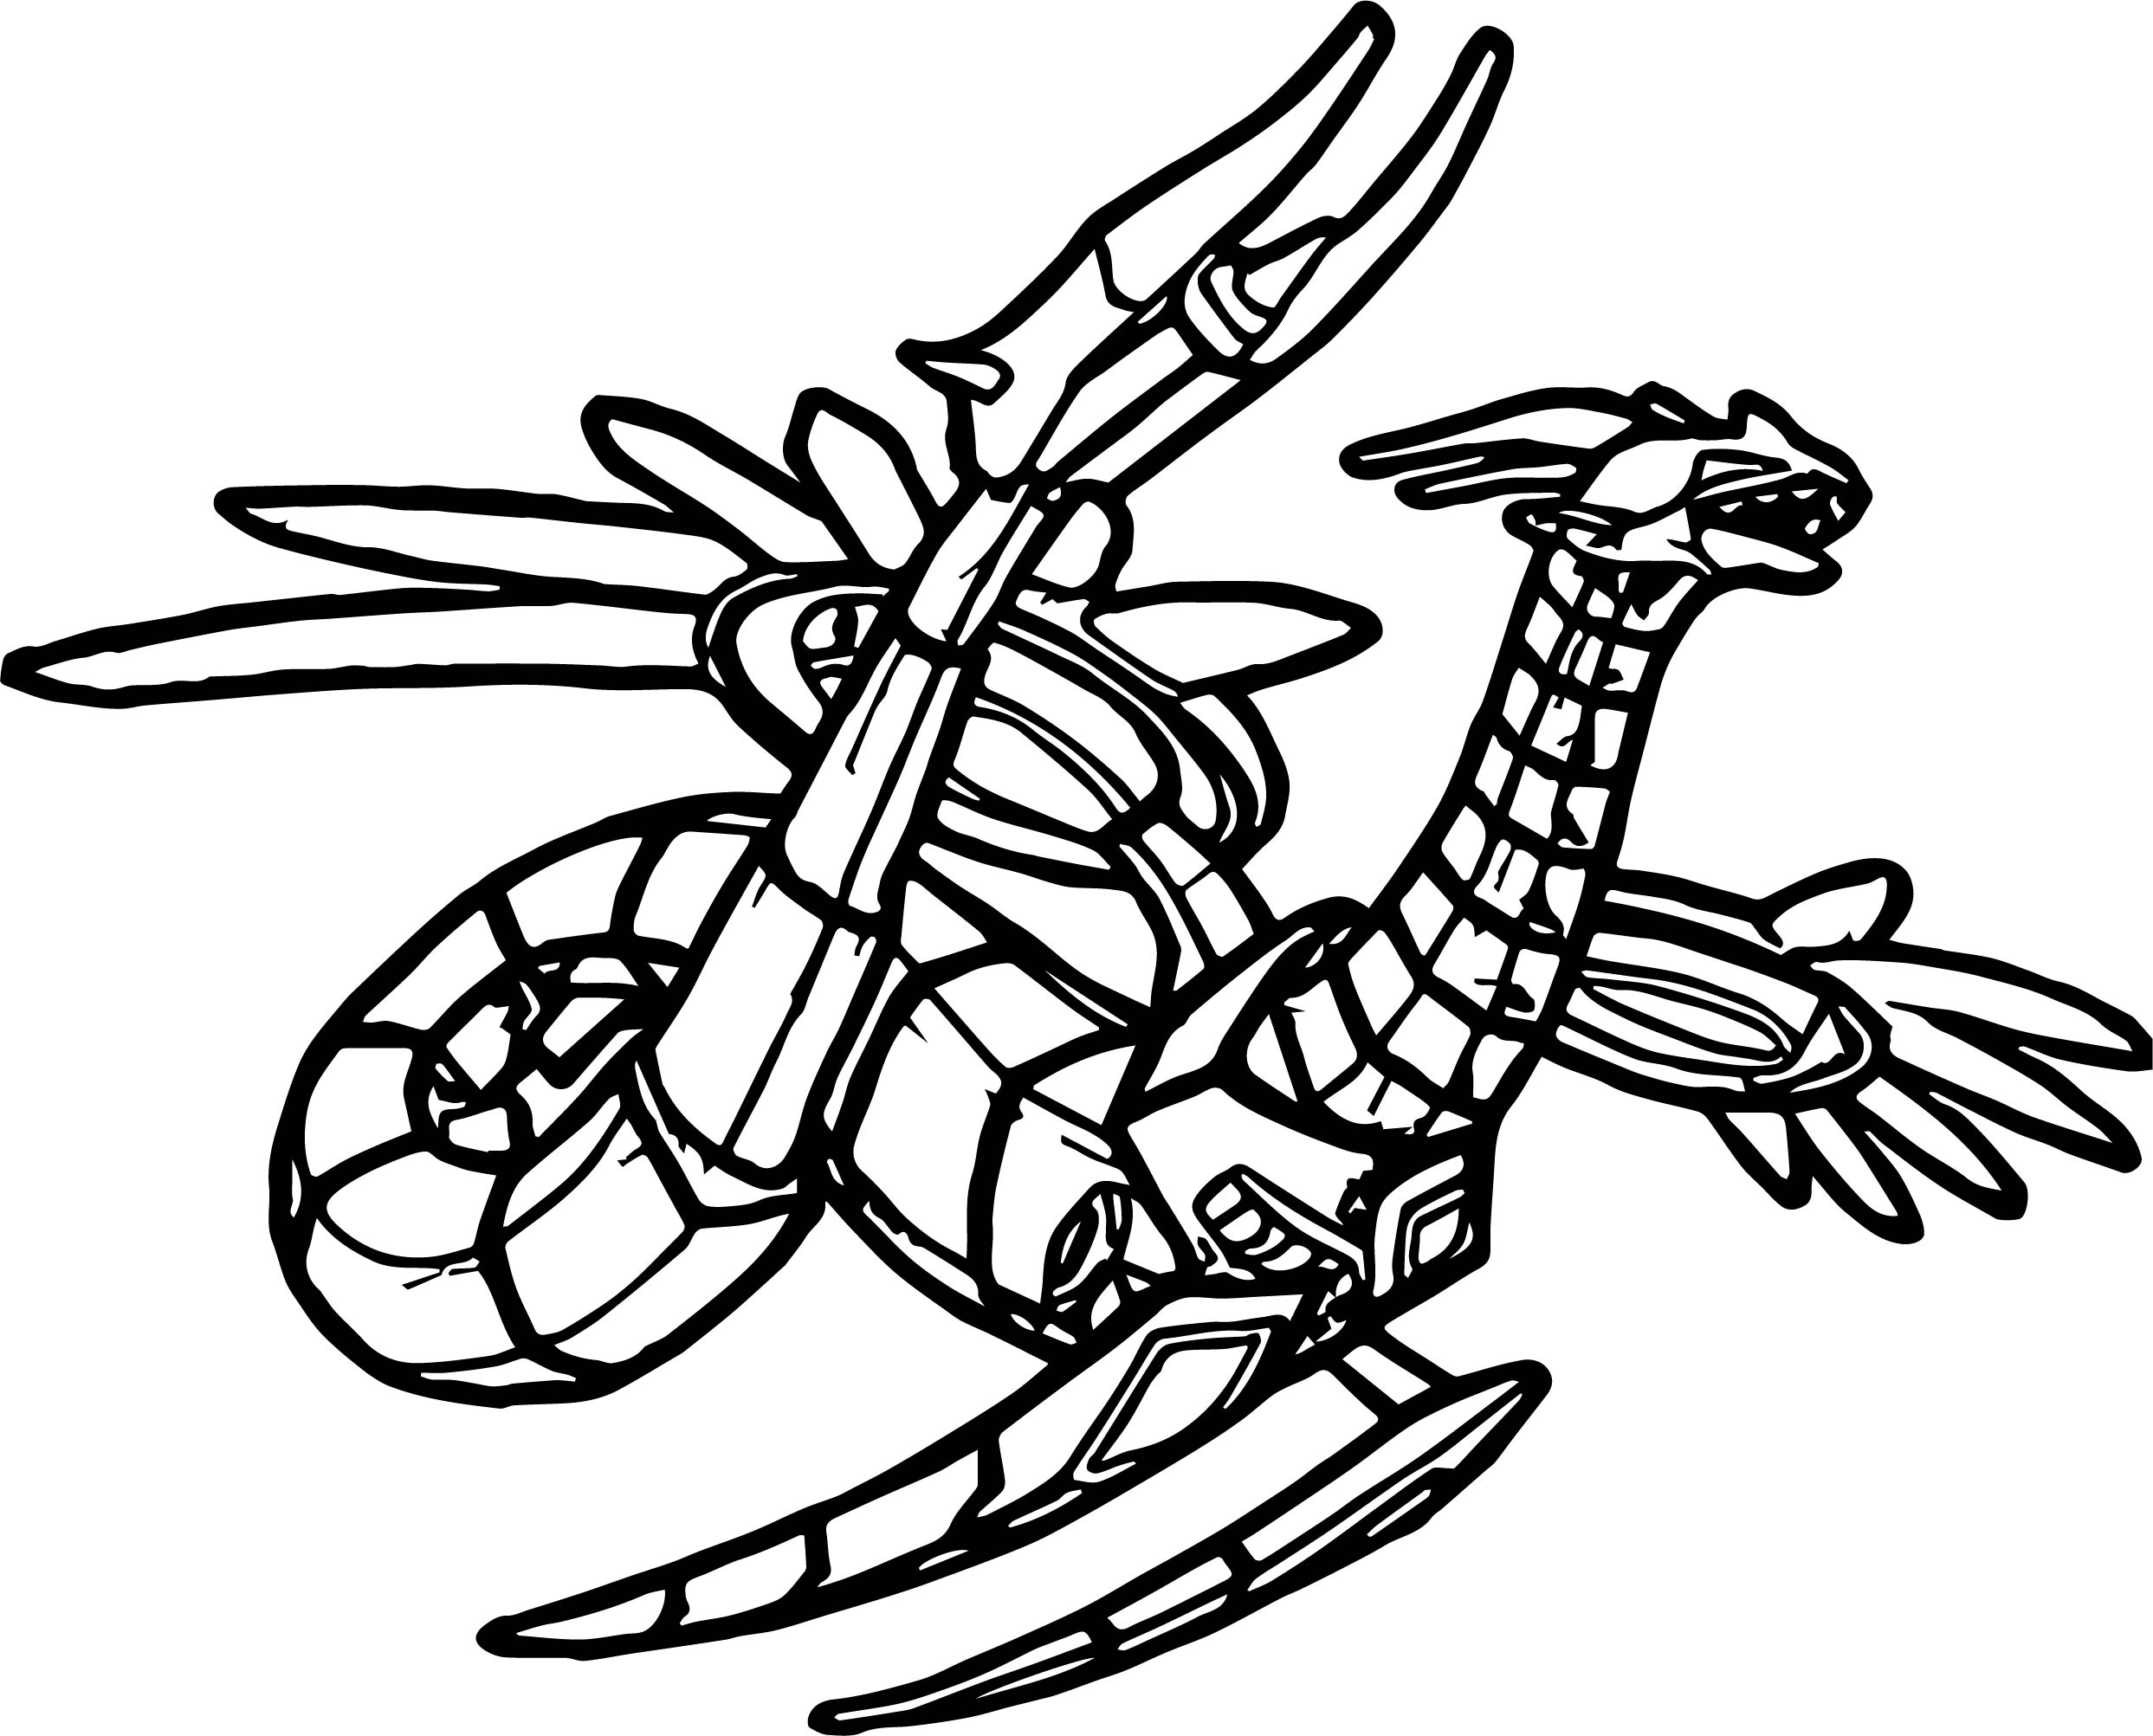 Bakugan altair coloring page for Bakugan coloring book pages